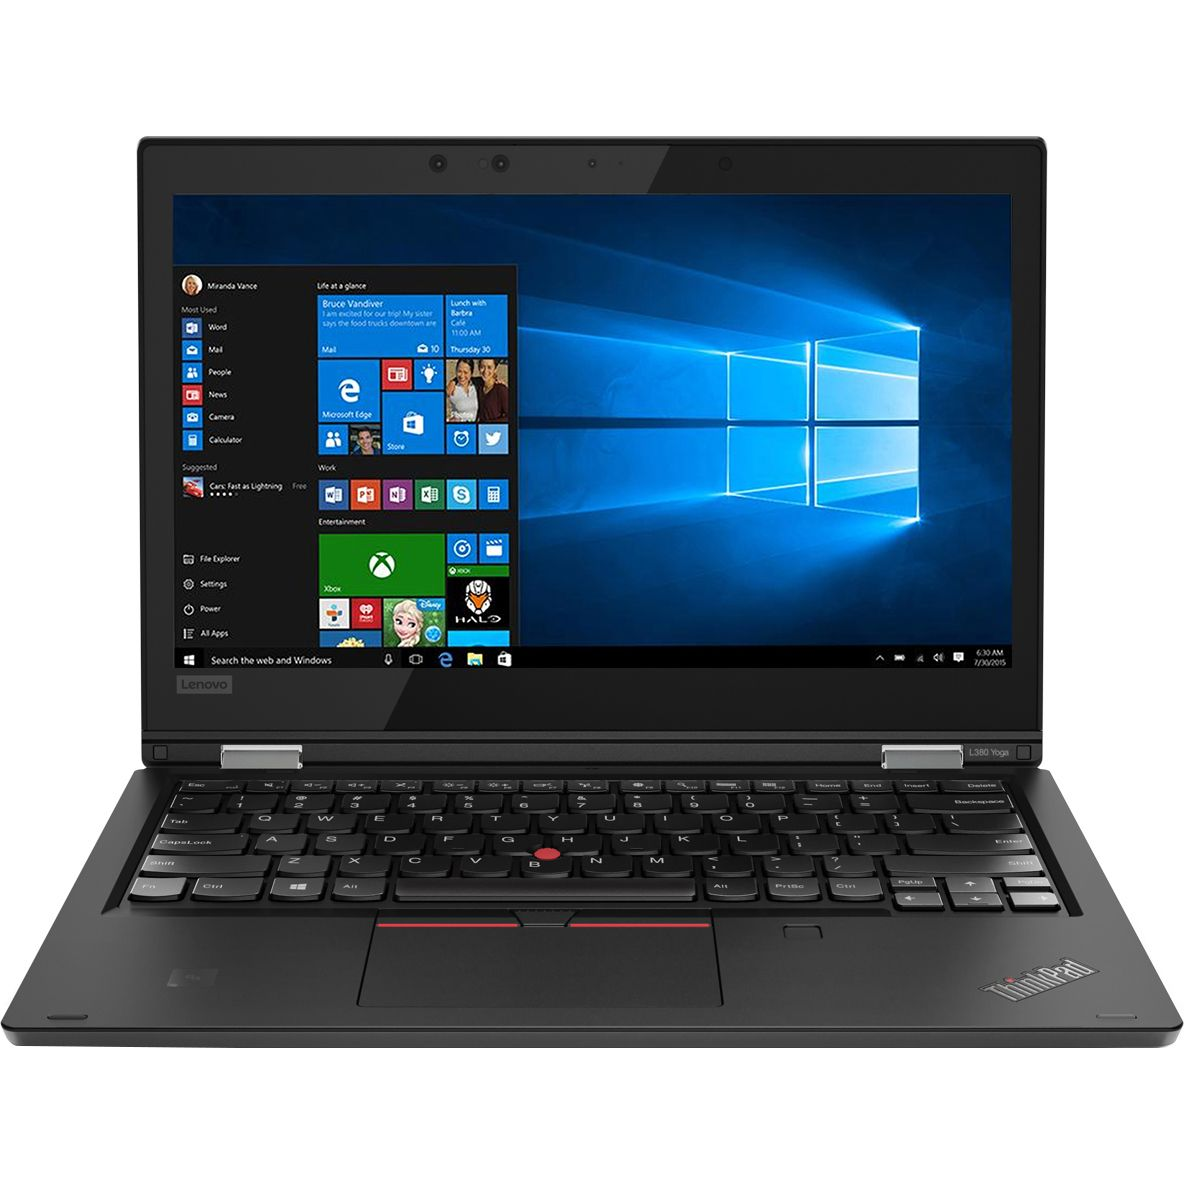 Ultrabook Lenovo ThinkPad L380 Yoga 13.3 Full HD Intel Core i5-8250U RAM 8GB SSD 256GB Windows 10 Pro Negru